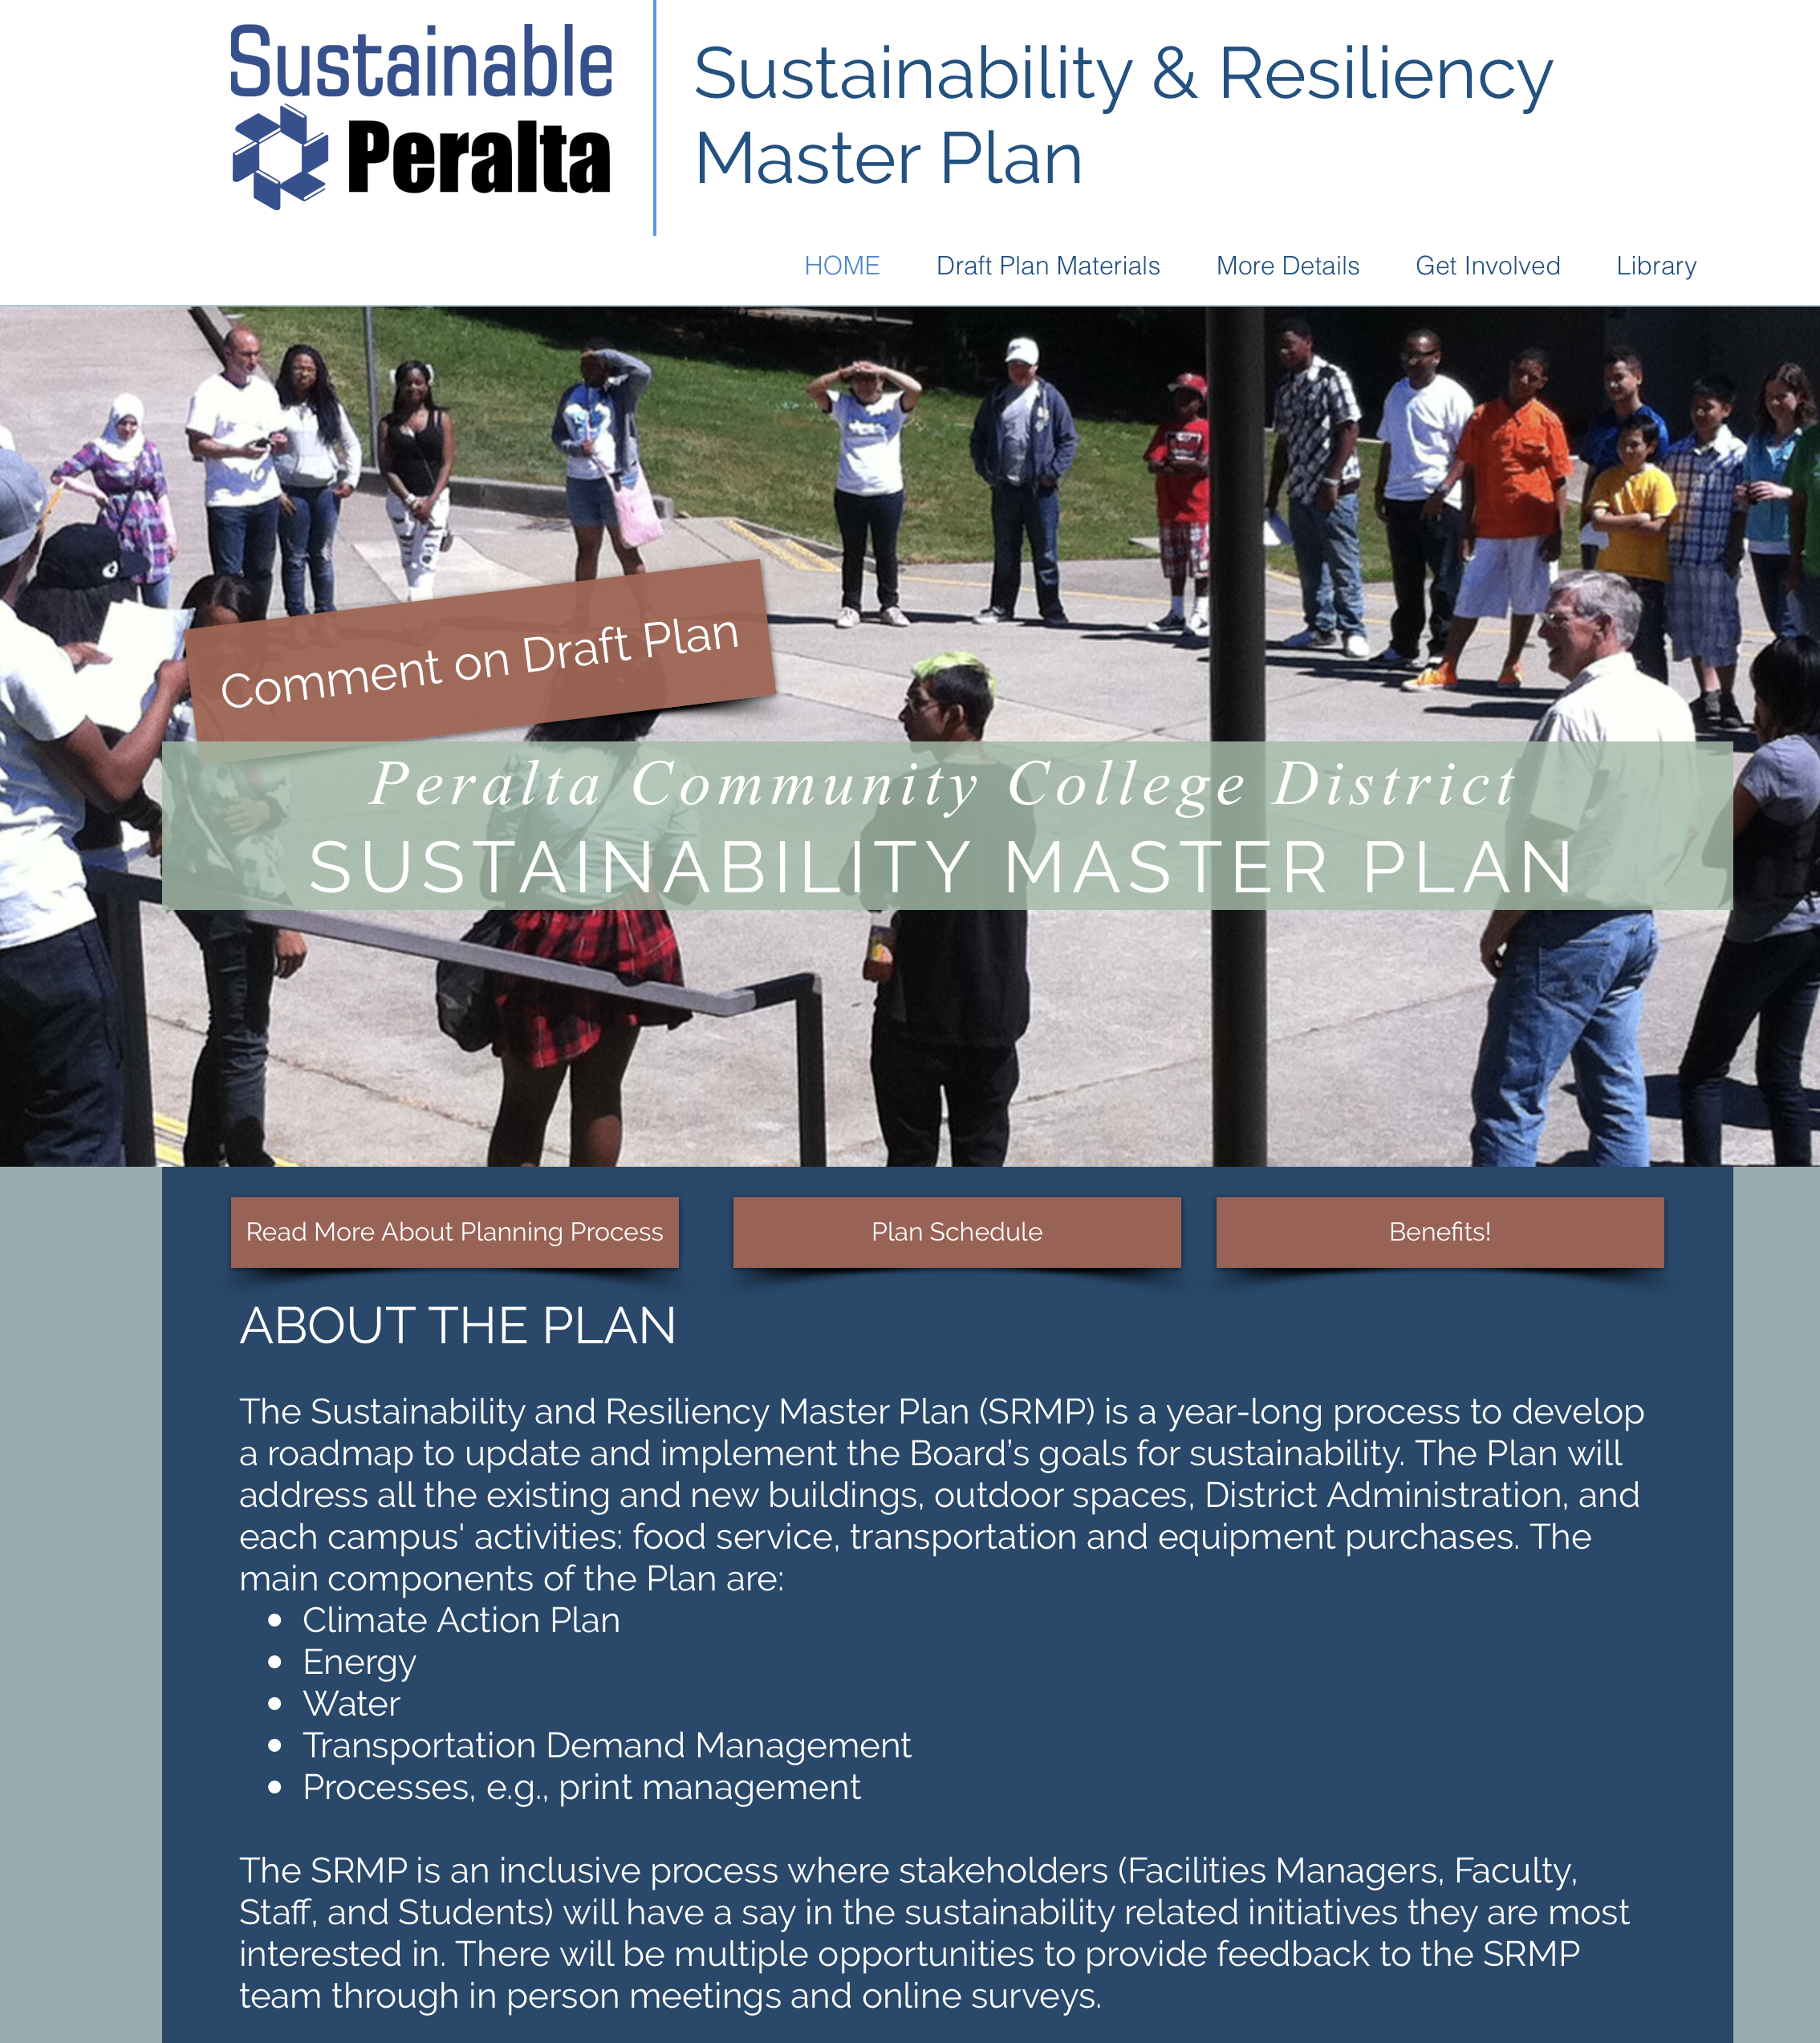 Peralta Sustainability Plan Website